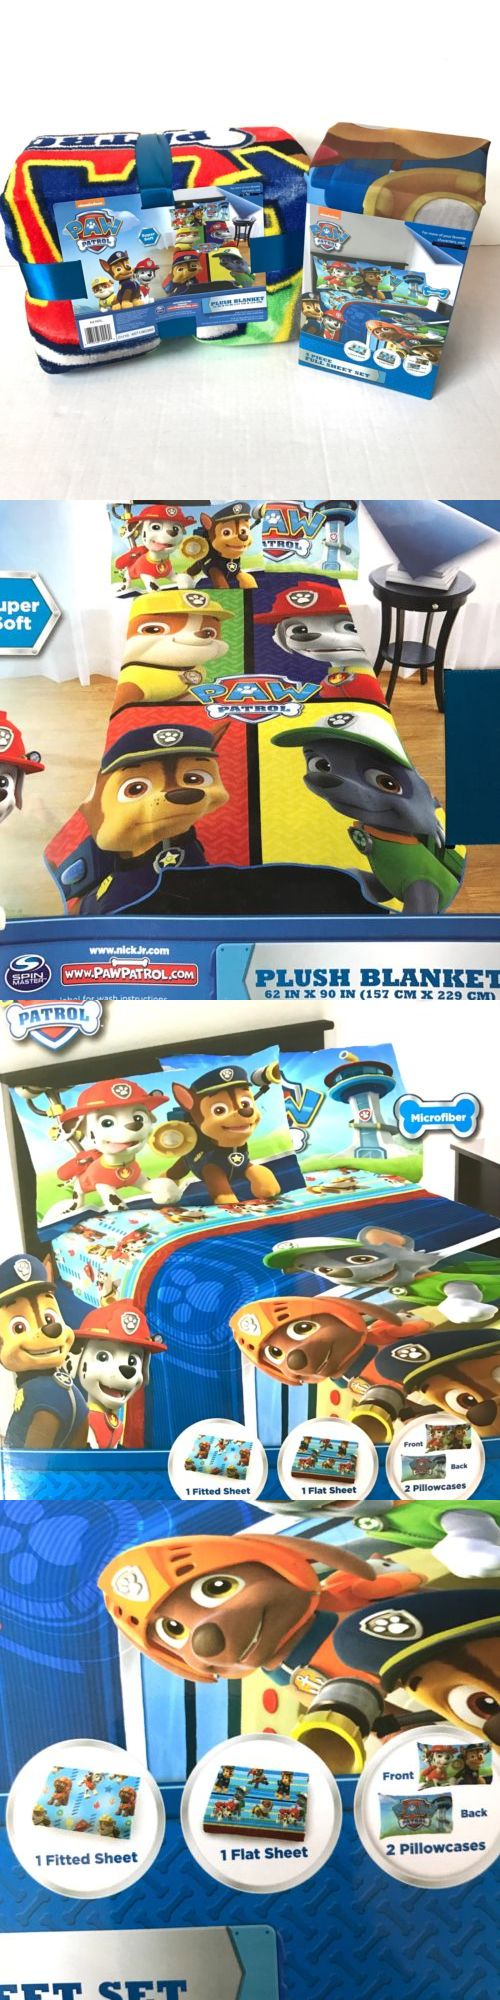 Blankets and Throws 66727: Paw Patrol Puppy Hero 4Pc Full Microfiber Bedding Set Sheets And Plush Blanket -> BUY IT NOW ONLY: $64.97 on eBay!